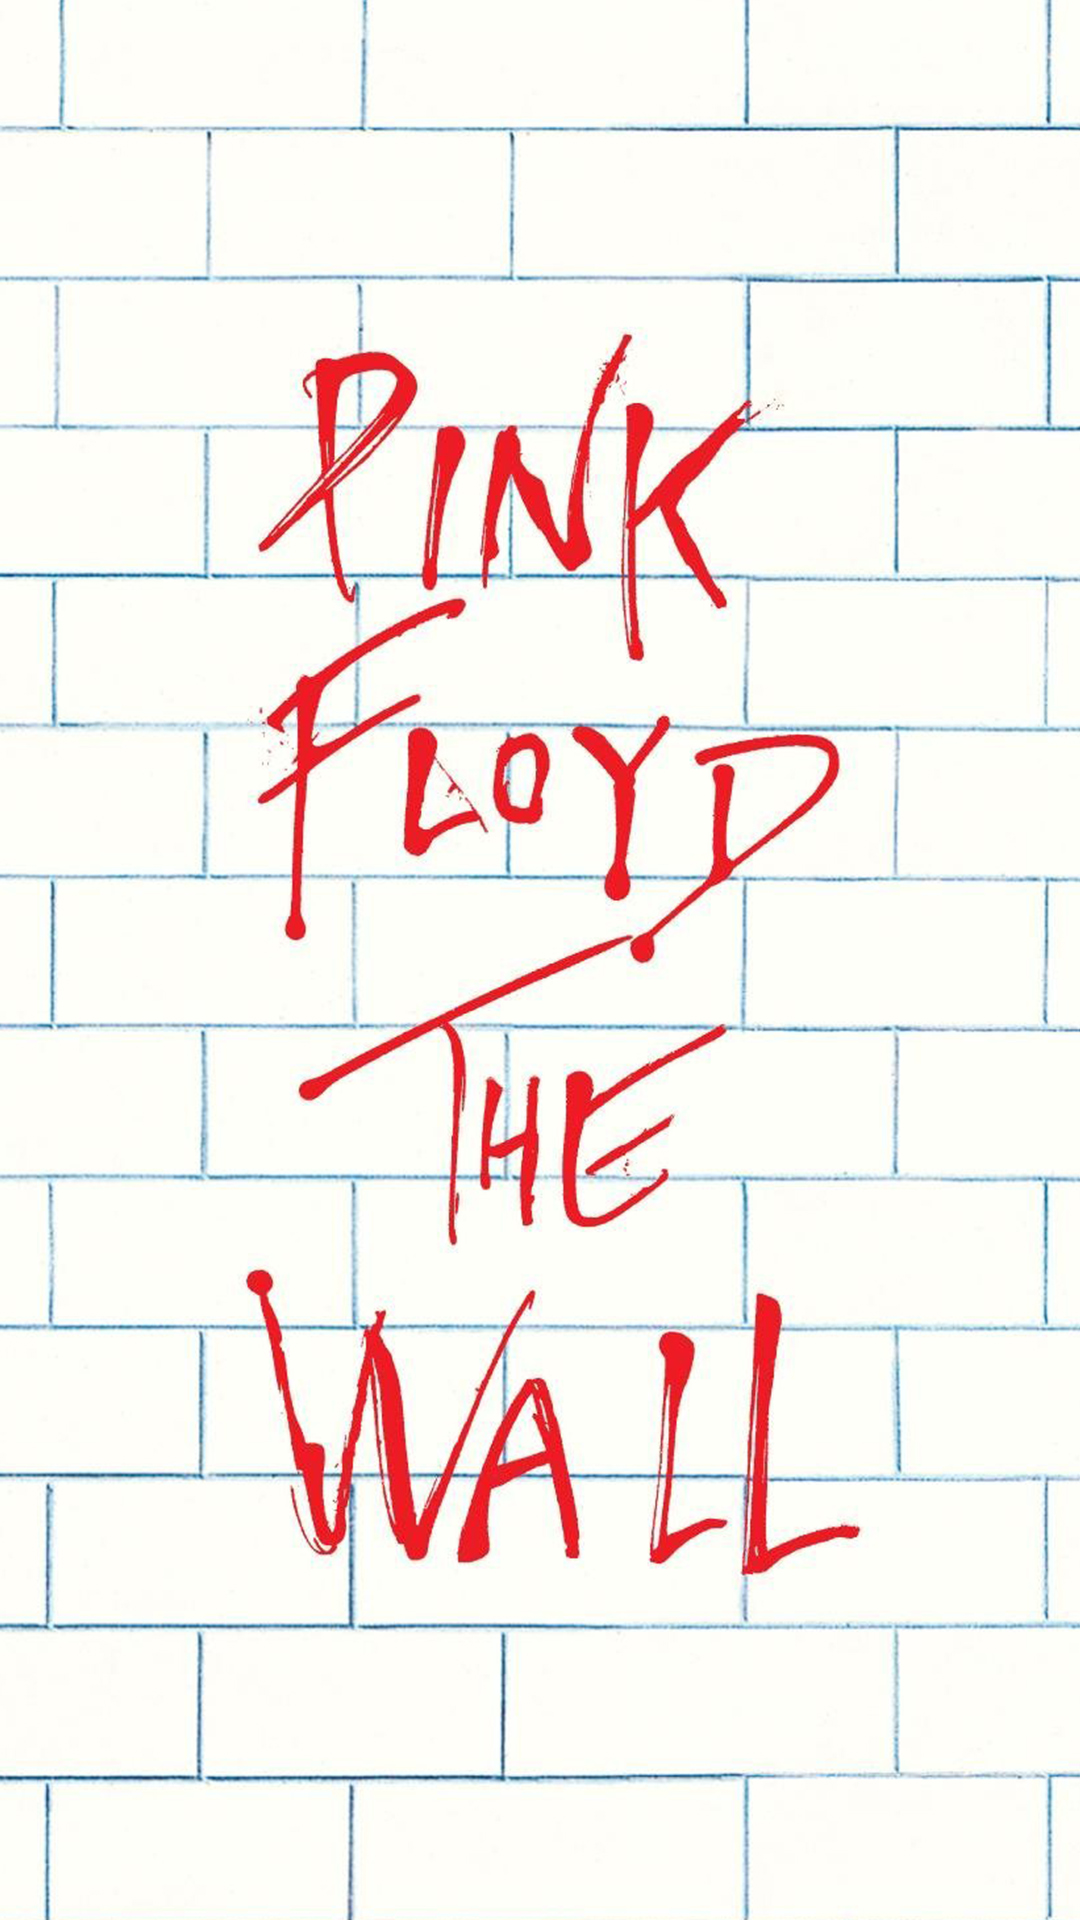 1080x1920 Pink Floyd The Wall HD Phone Wallpaper ...1093